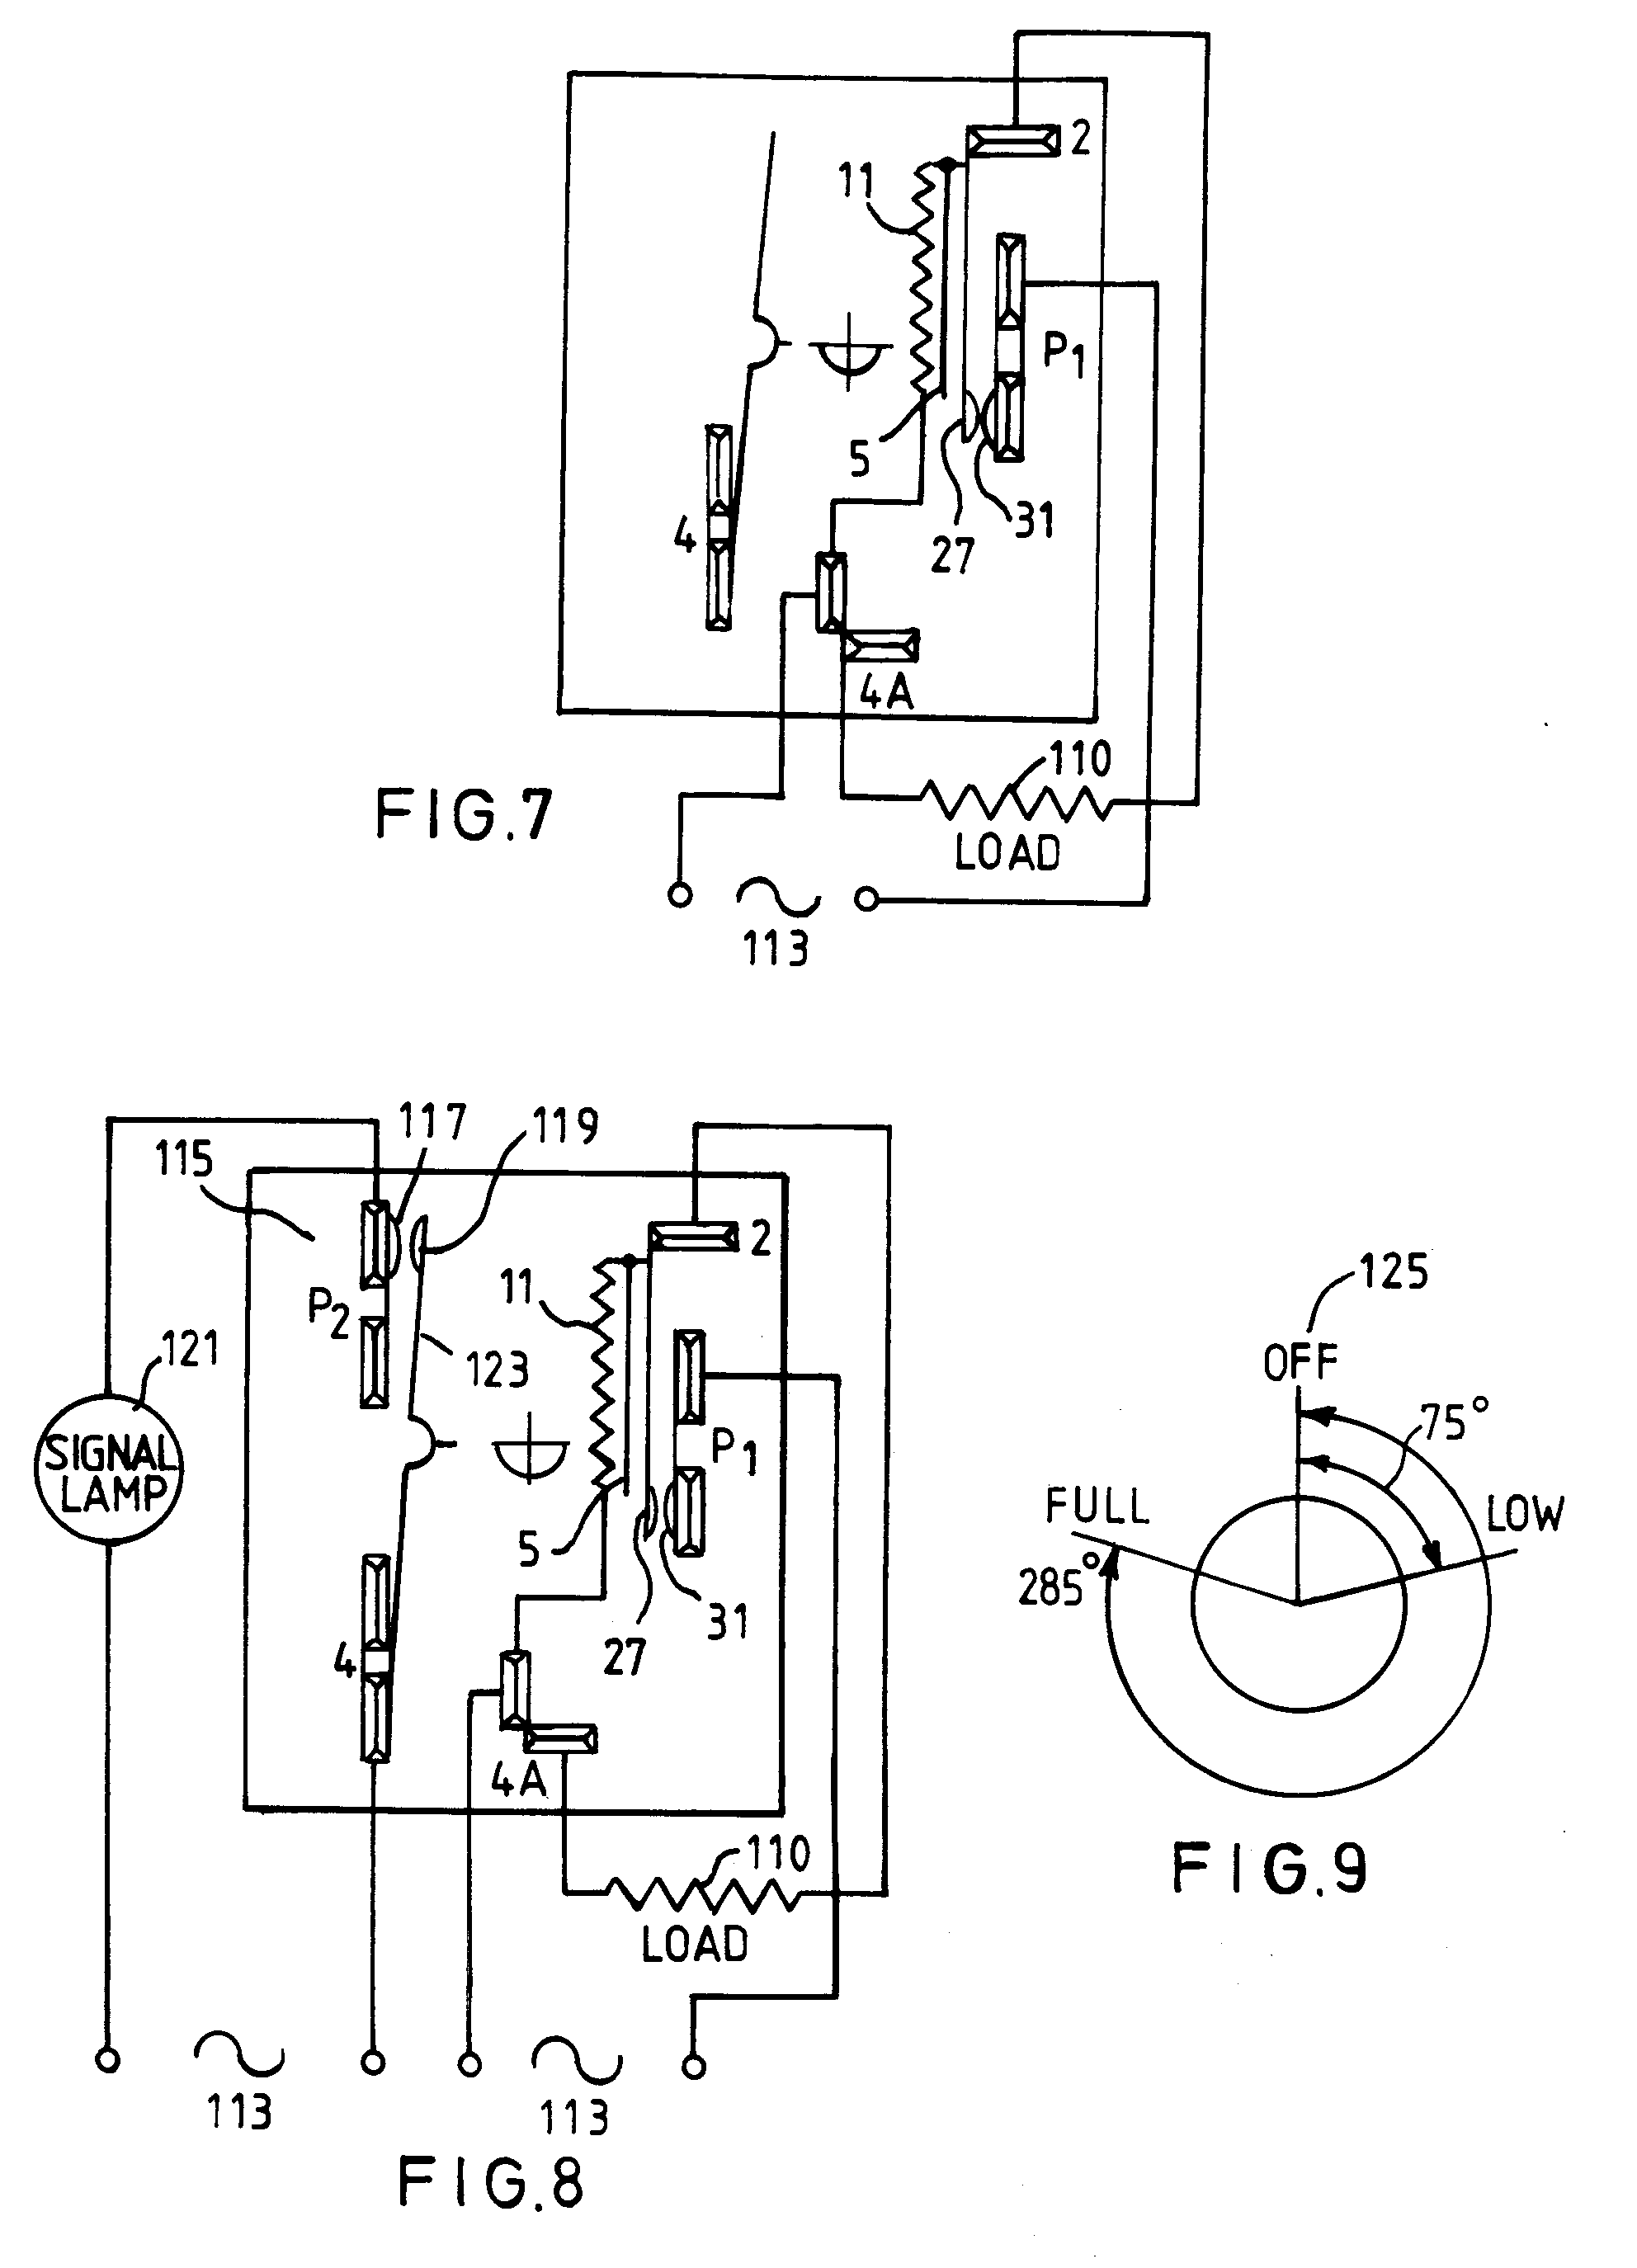 D90C7 Smc Coil Sy5140 Wiring Diagram | Wiring LibraryWiring Library